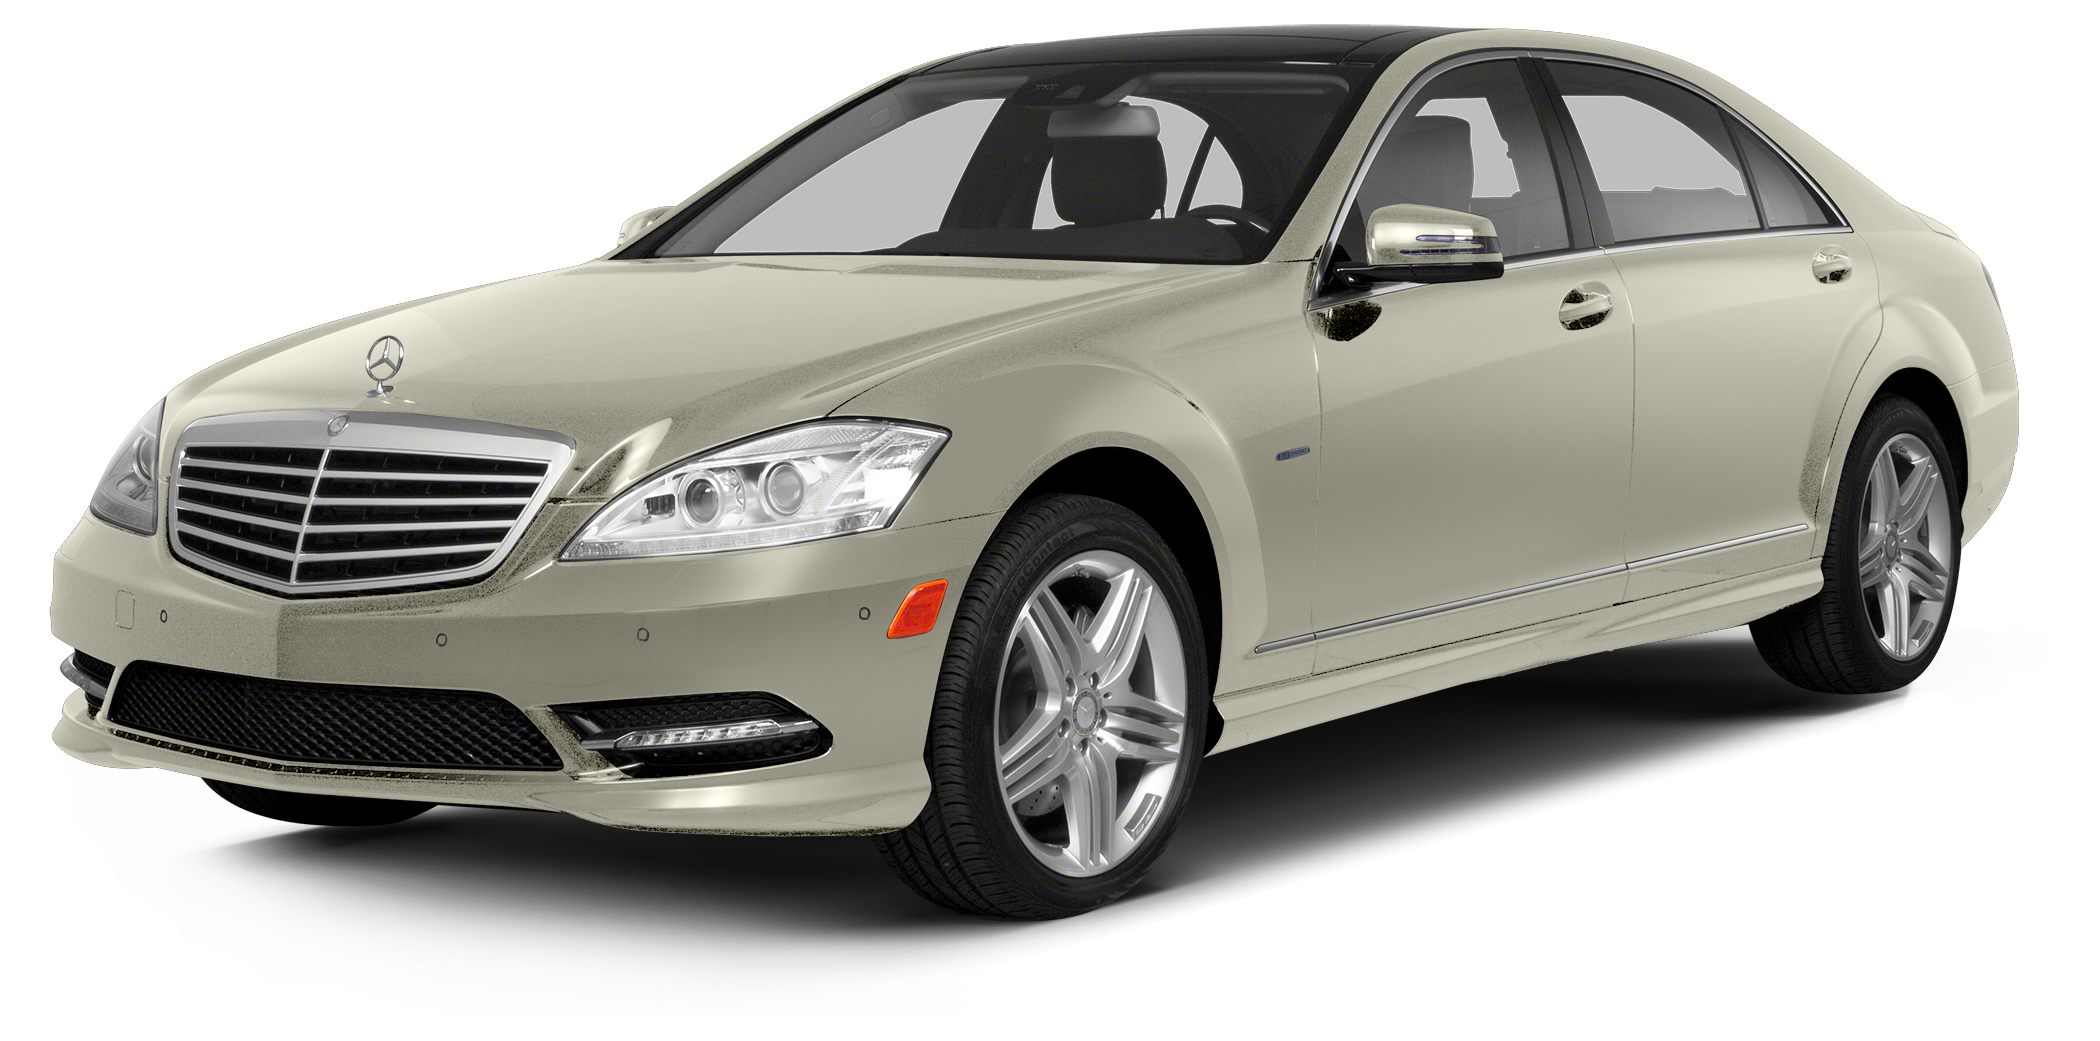 2013 MERCEDES S-Class S550 4MATIC  WHEN IT COMES TO EXCELLENCE IN USED CAR SALESYOU KNOW YOU